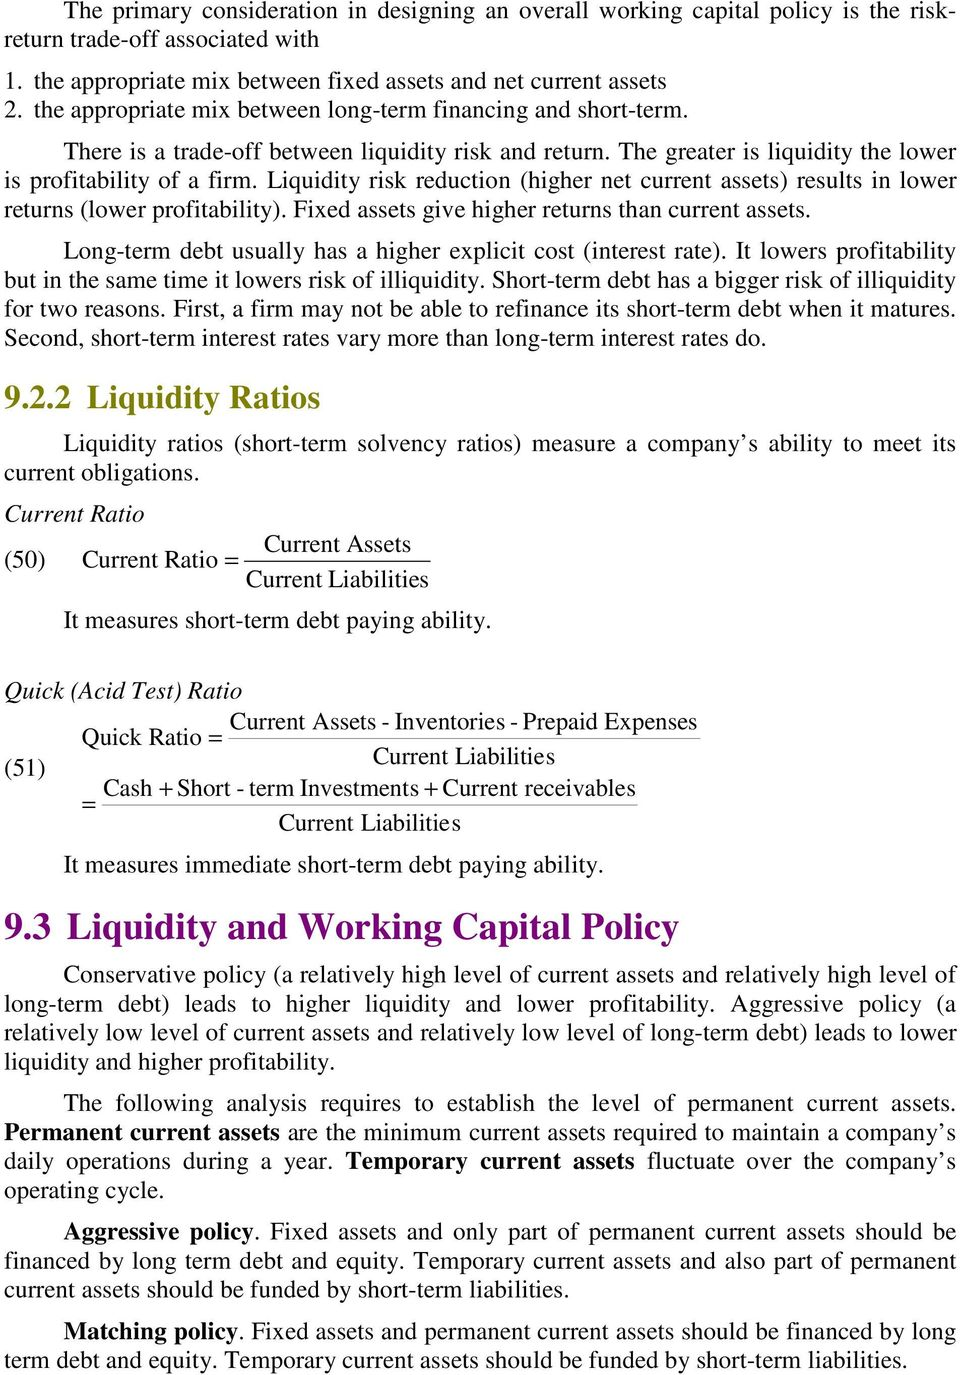 Liquidity risk reduction (higher net current assets) results in lower returns (lower profitability). Fixed assets give higher returns than current assets.